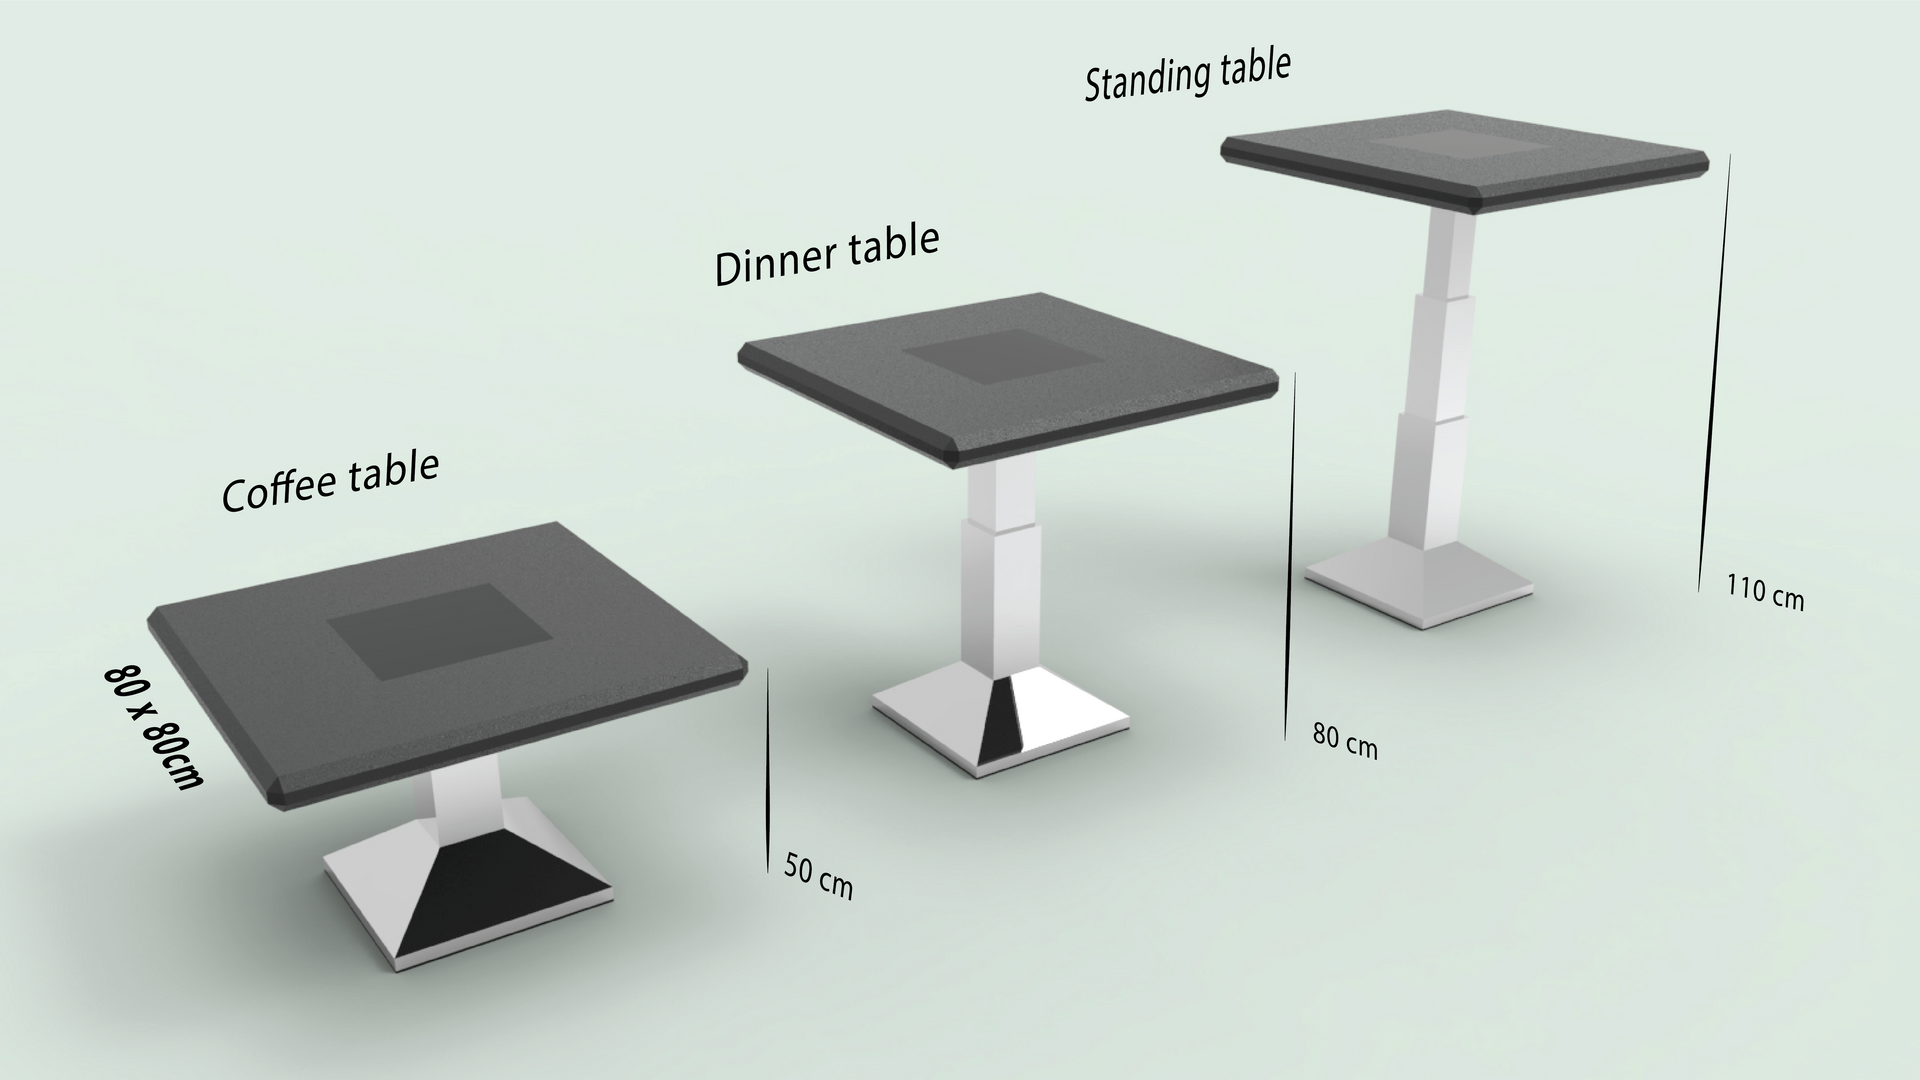 Tower Table slide 2.3.png